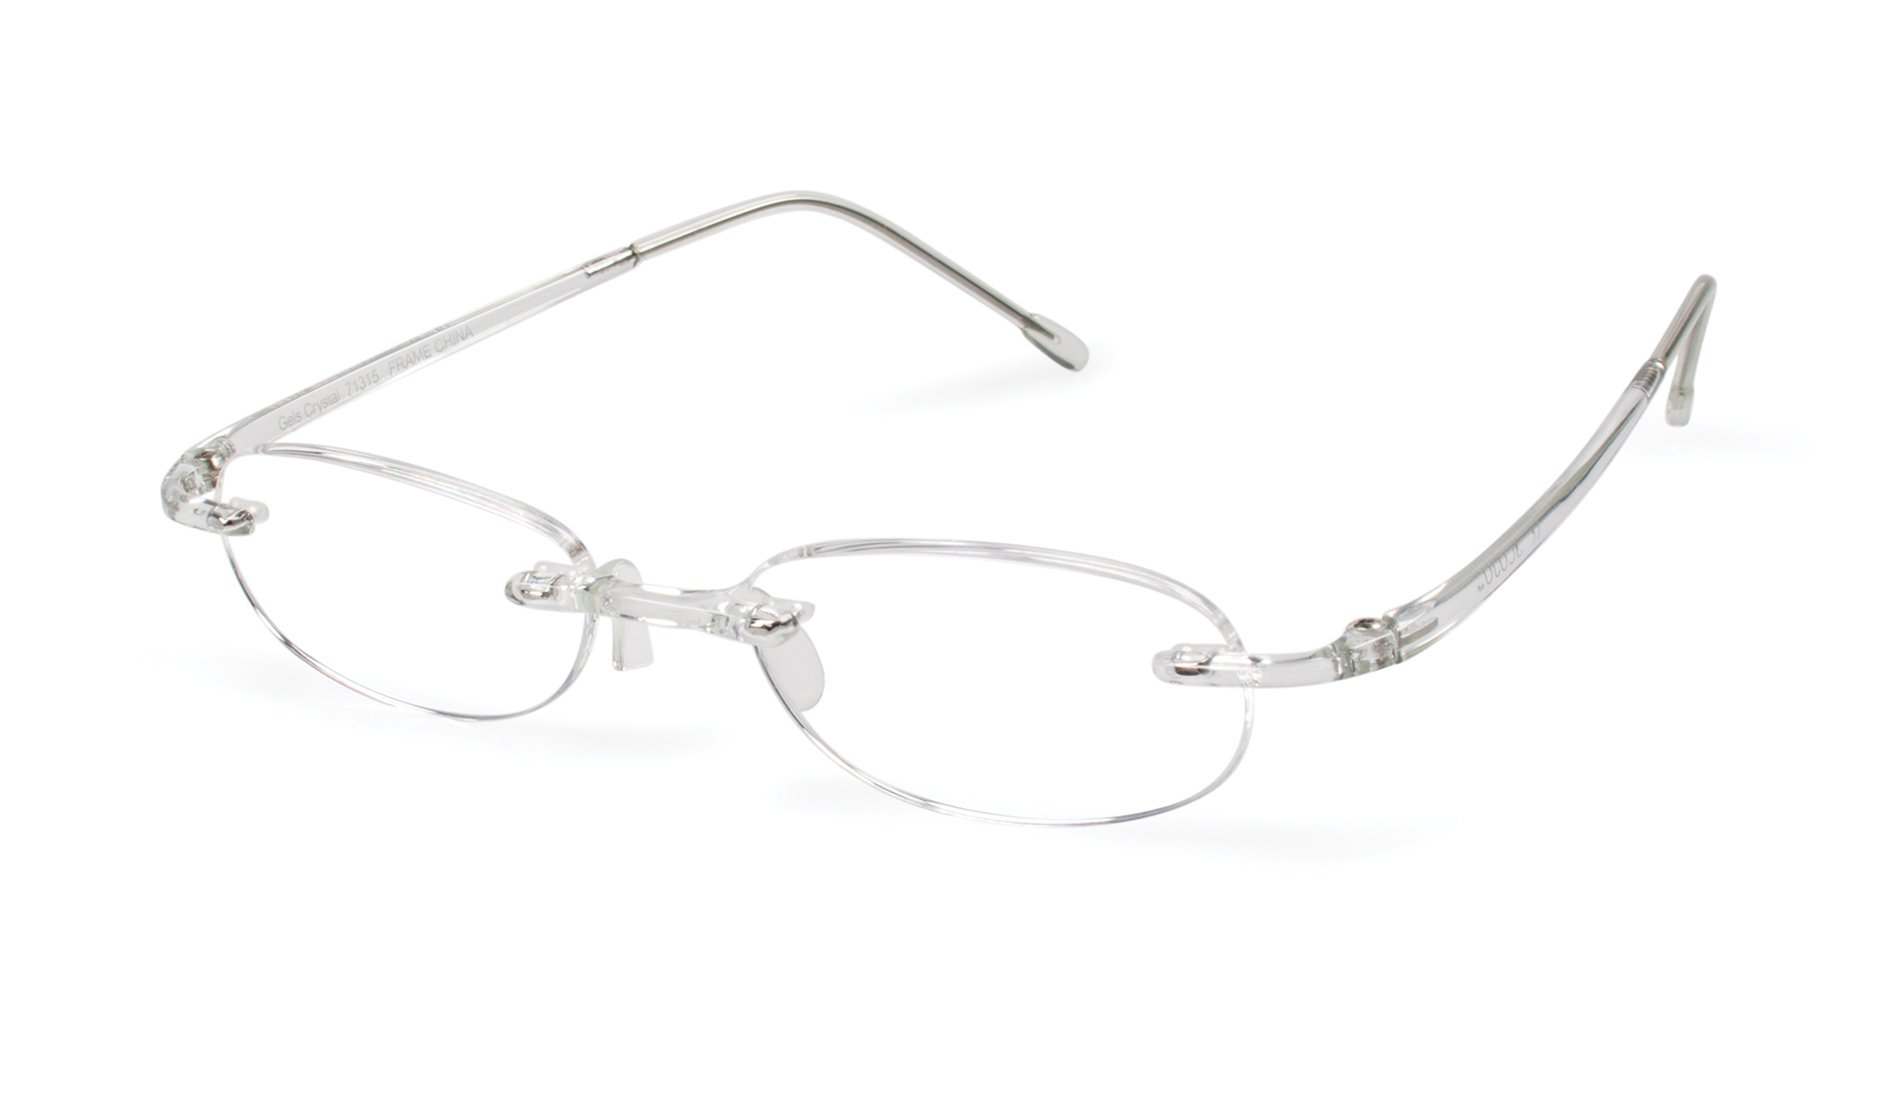 f43b6a76234 Gels - Lightweight Rimless Fashion Readers - The Original Reading Glasses  for Men and Women -